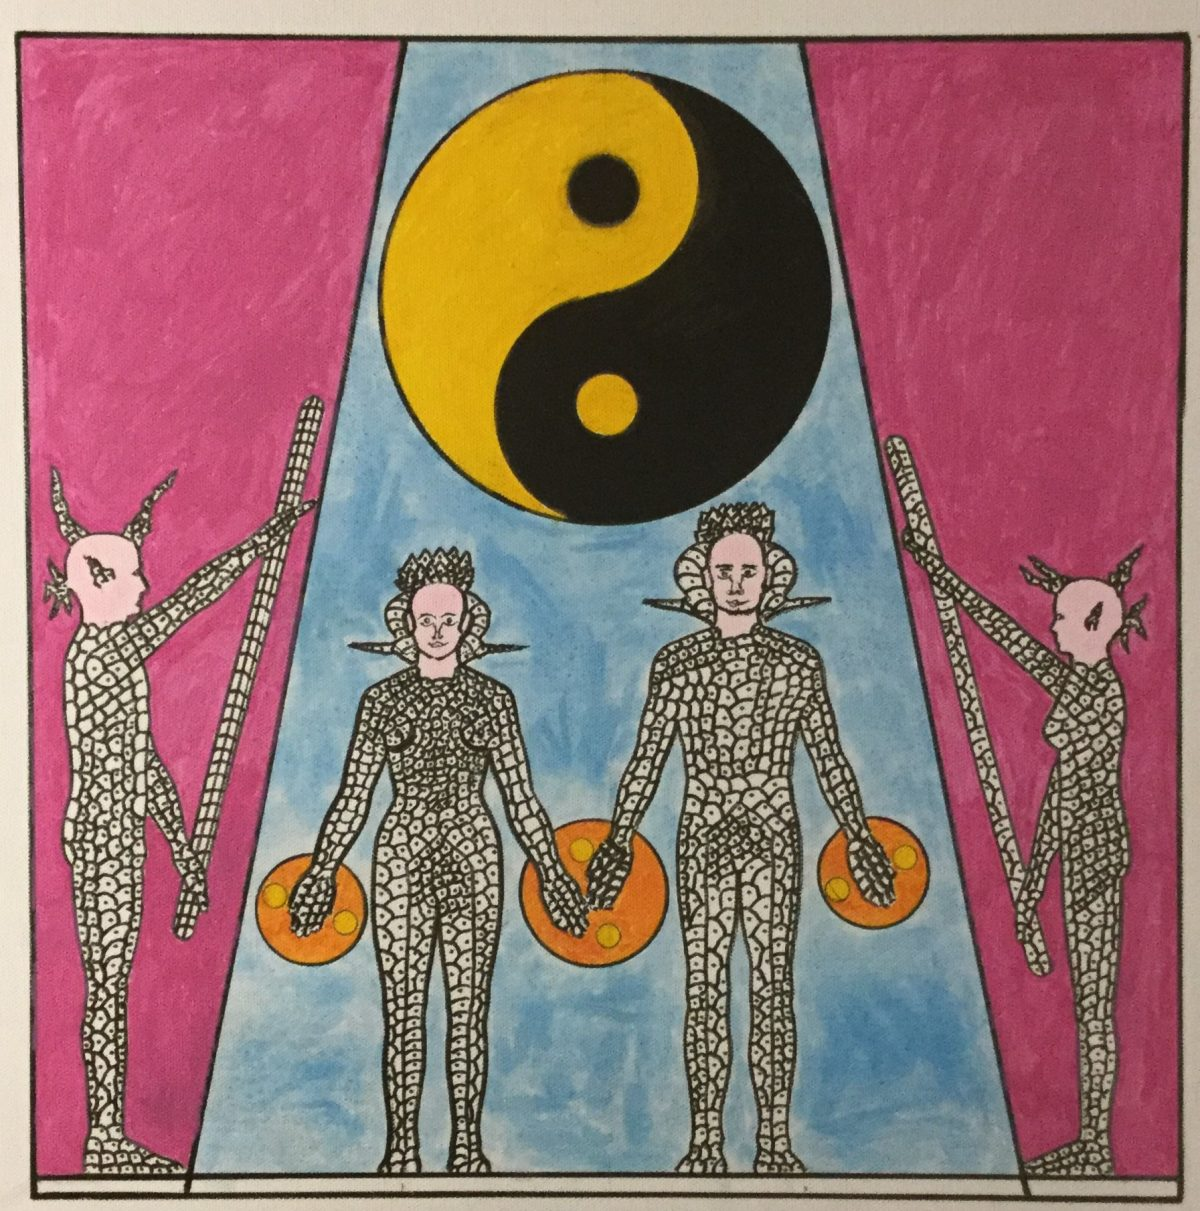 A painting of four figures in a line, the middle two are facing forwards flanked by two in profile.  Behind them is a blue and pink background with a yellow and black yin yang symbol.